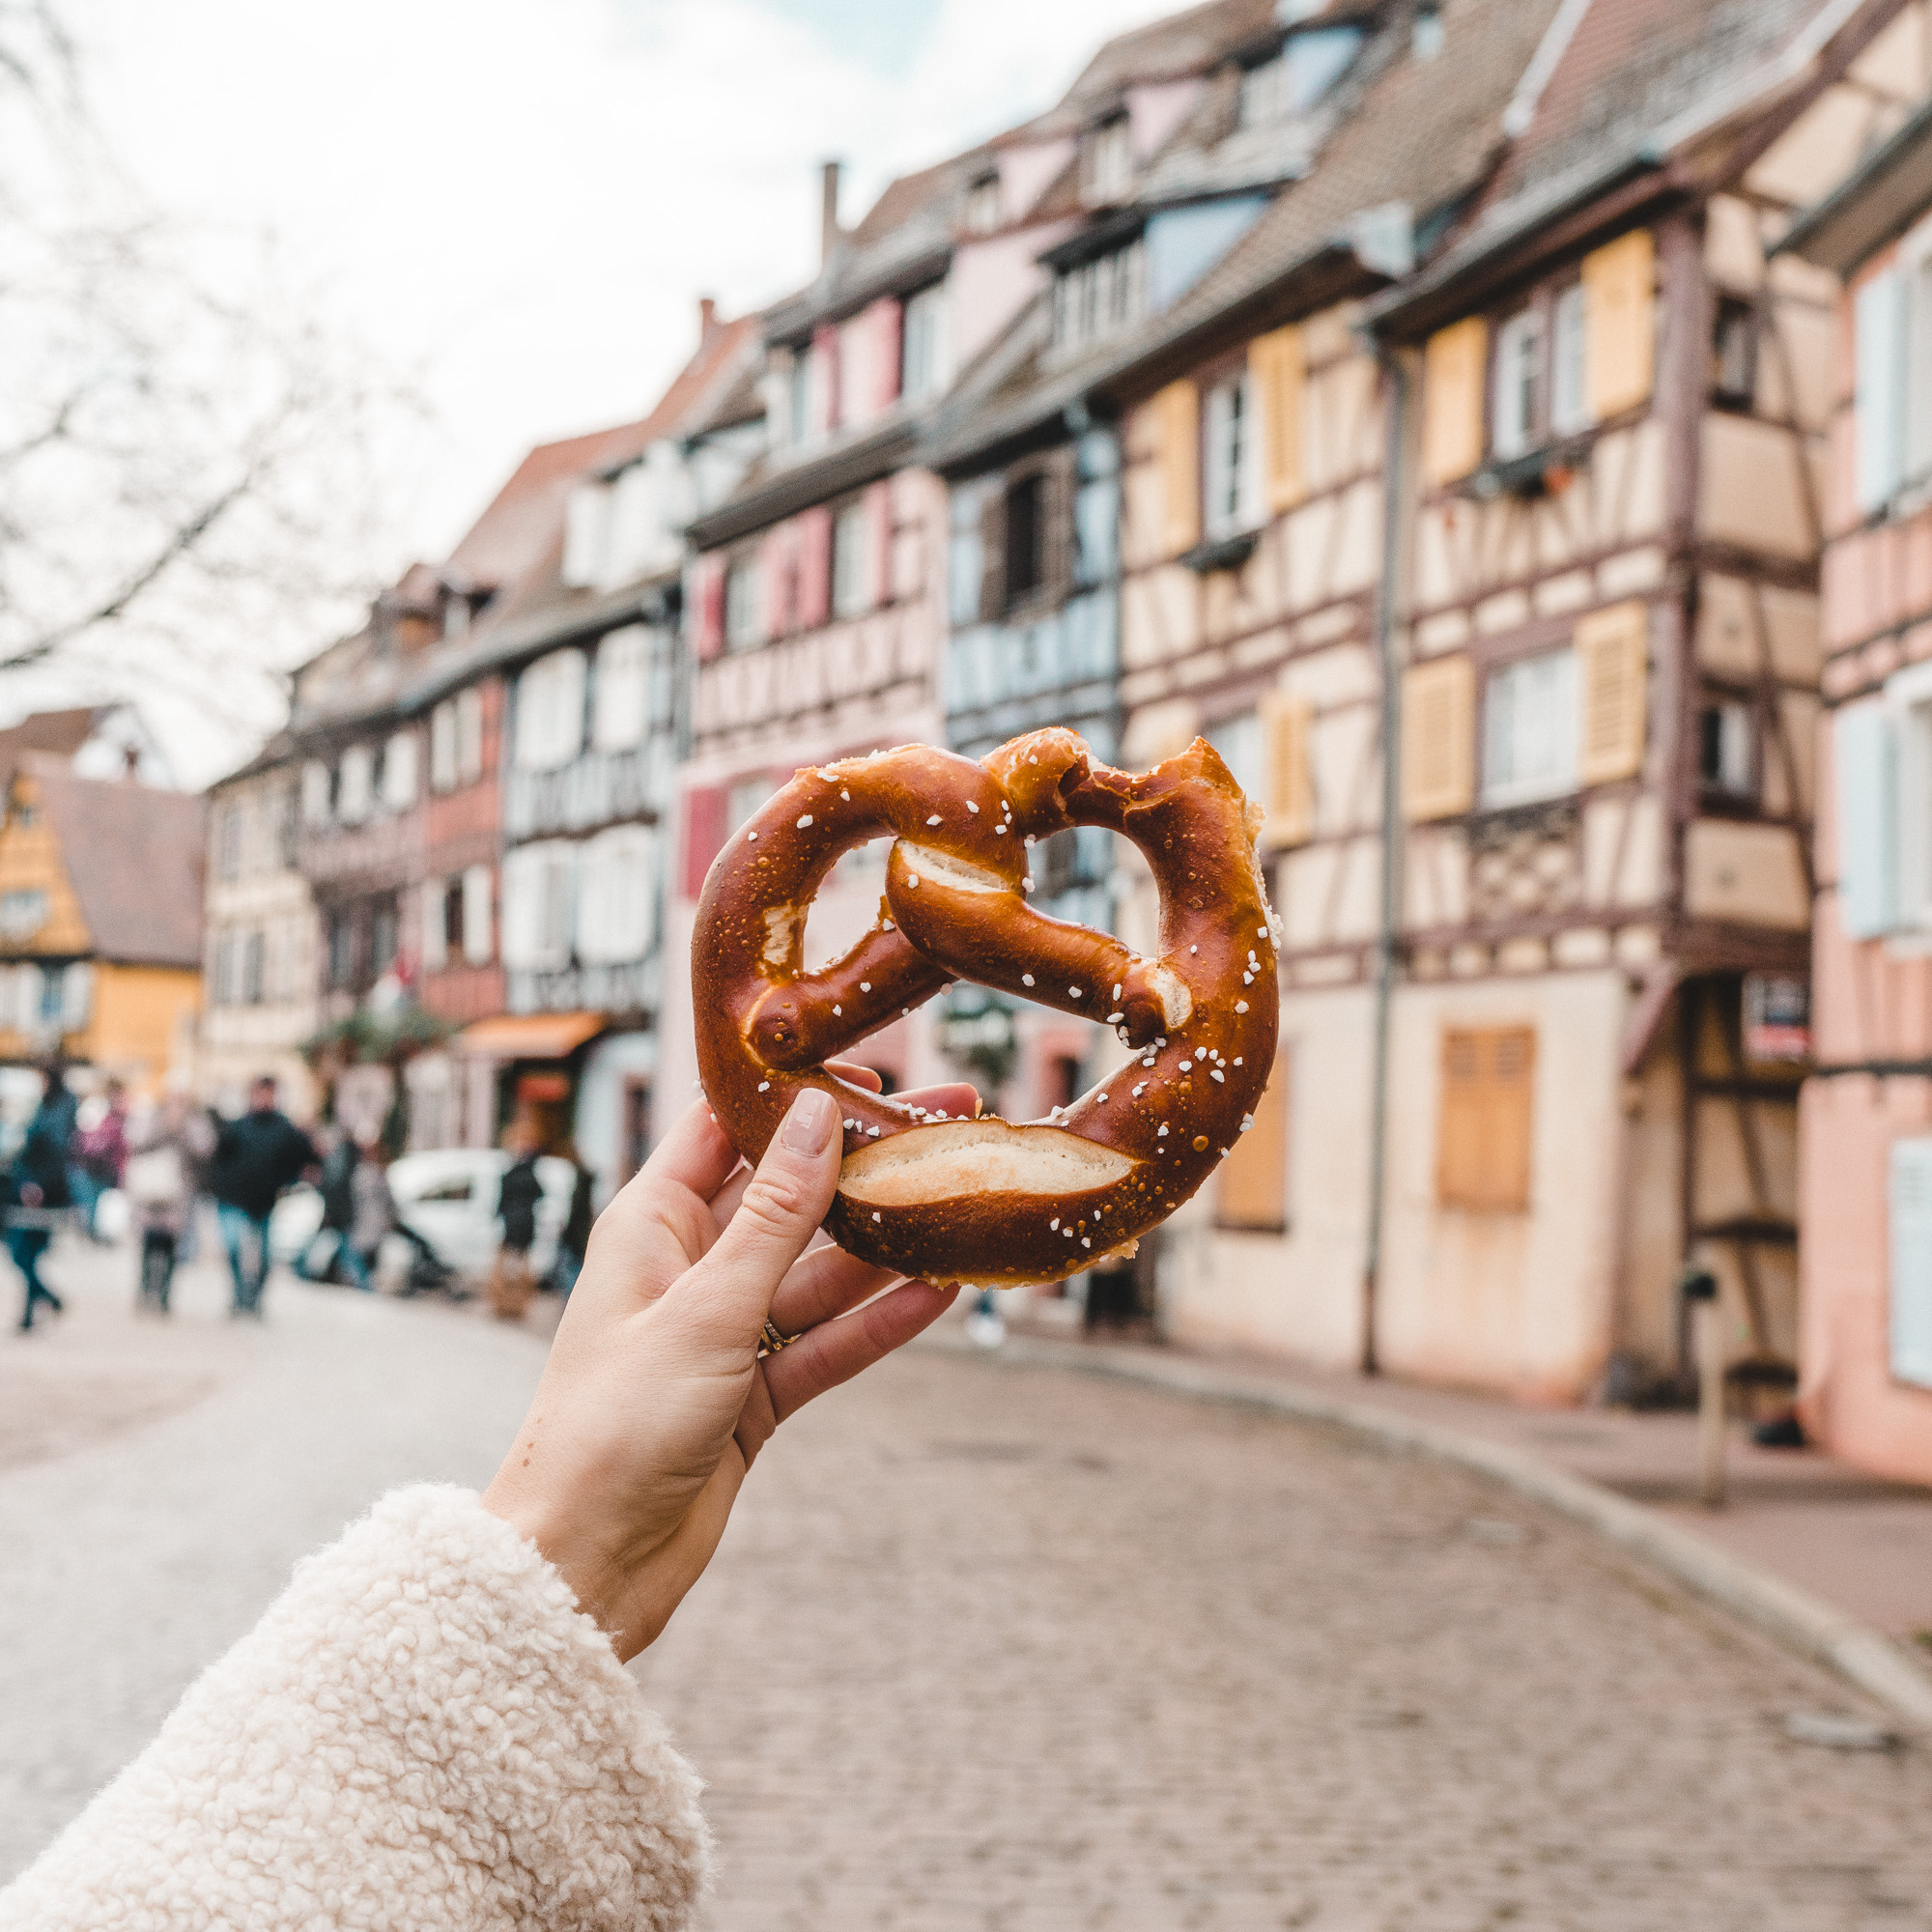 Fresh baked pretzels at the Colmar christmas market in france